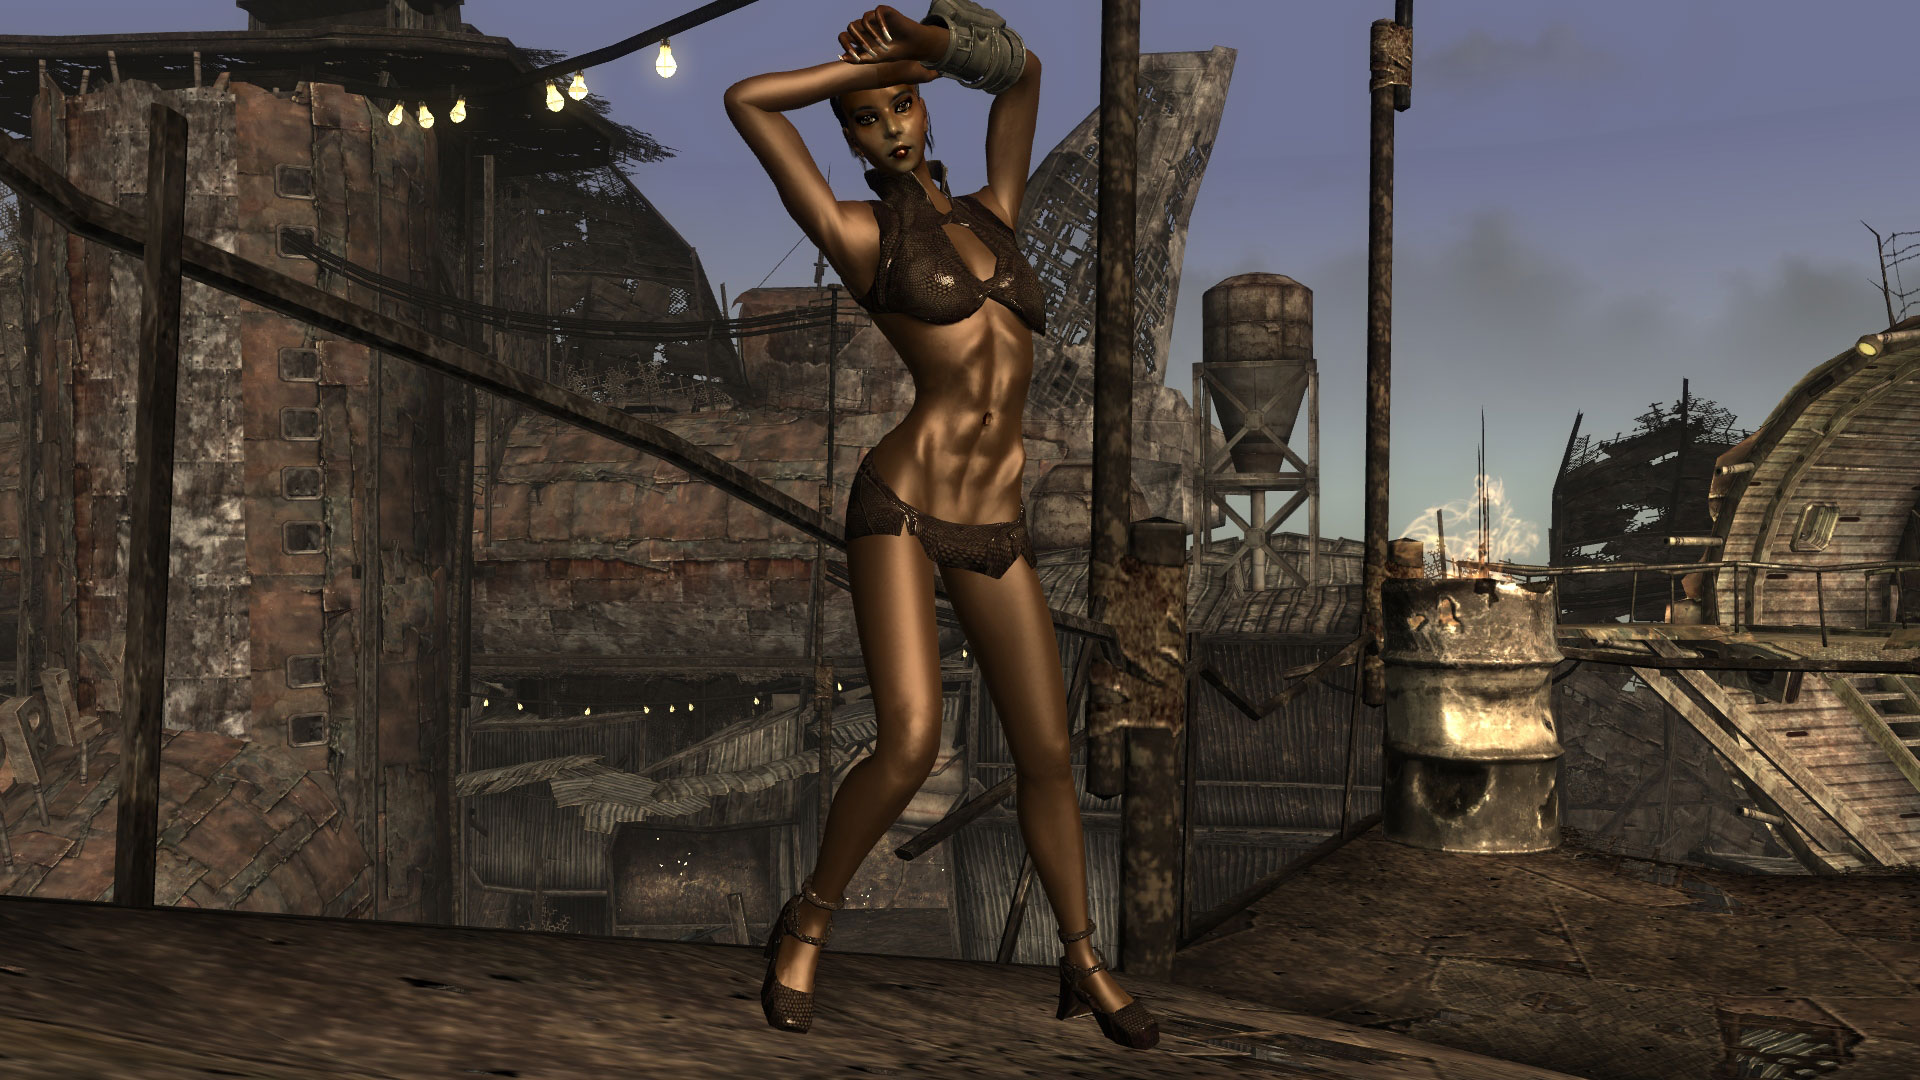 Gta iv girl naked sexy pic